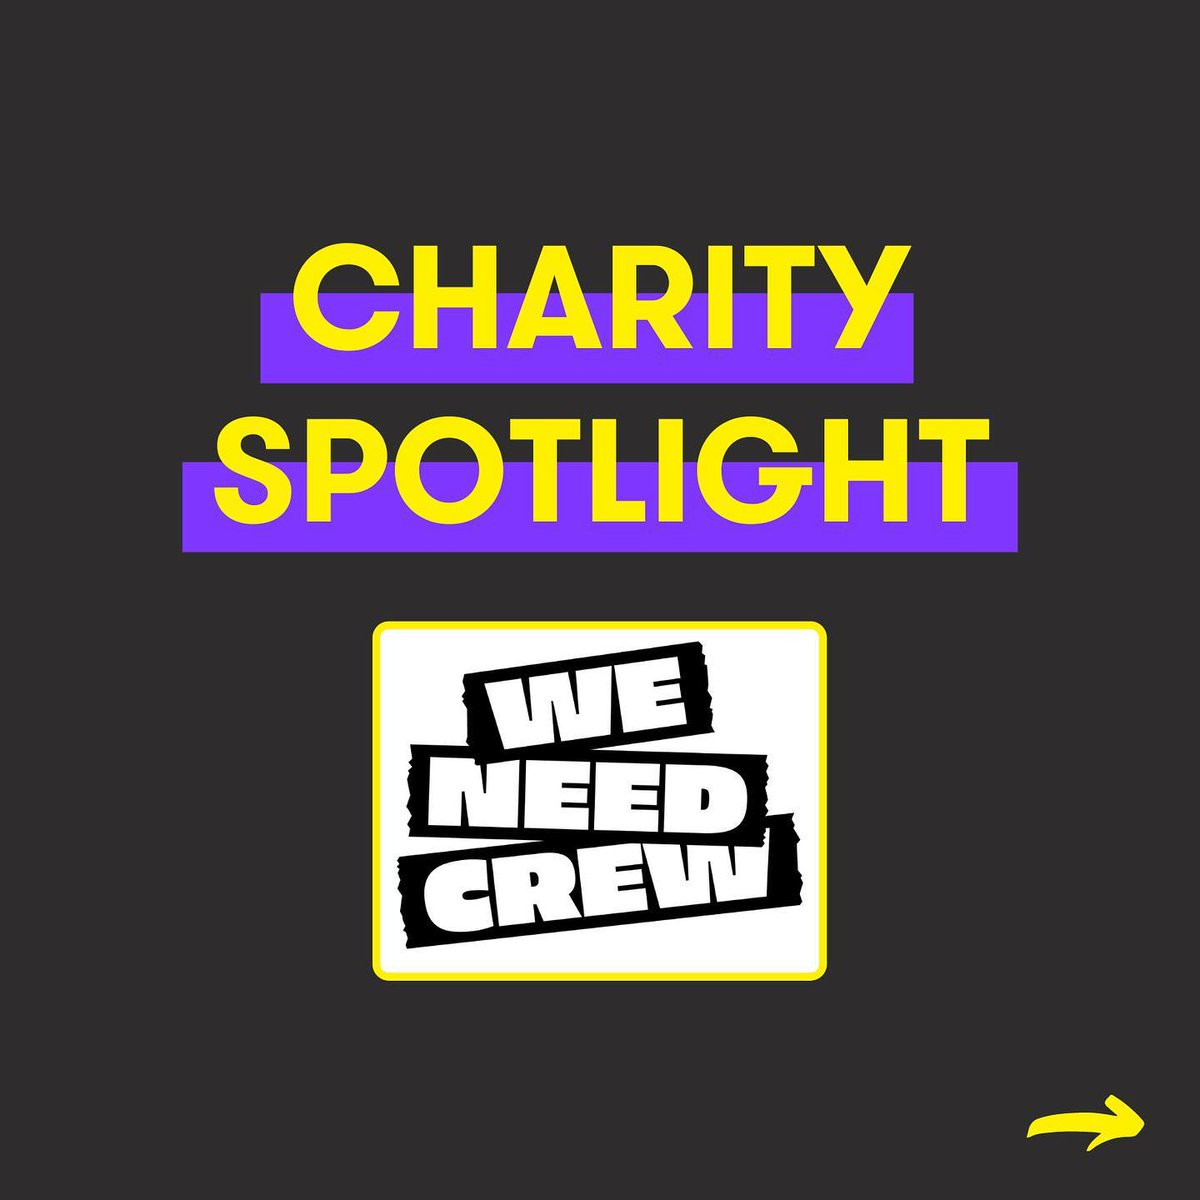 We've teamed up with @weneedcrew to raise funds for the live music industry. There's still time to win some amazing prizes... ⠀ Guitar Win @NiallOfficial 's signed guitar!⠀ Win a private virtual quiz night with @ildivoofficial  + MORE ⠀ Donate today: